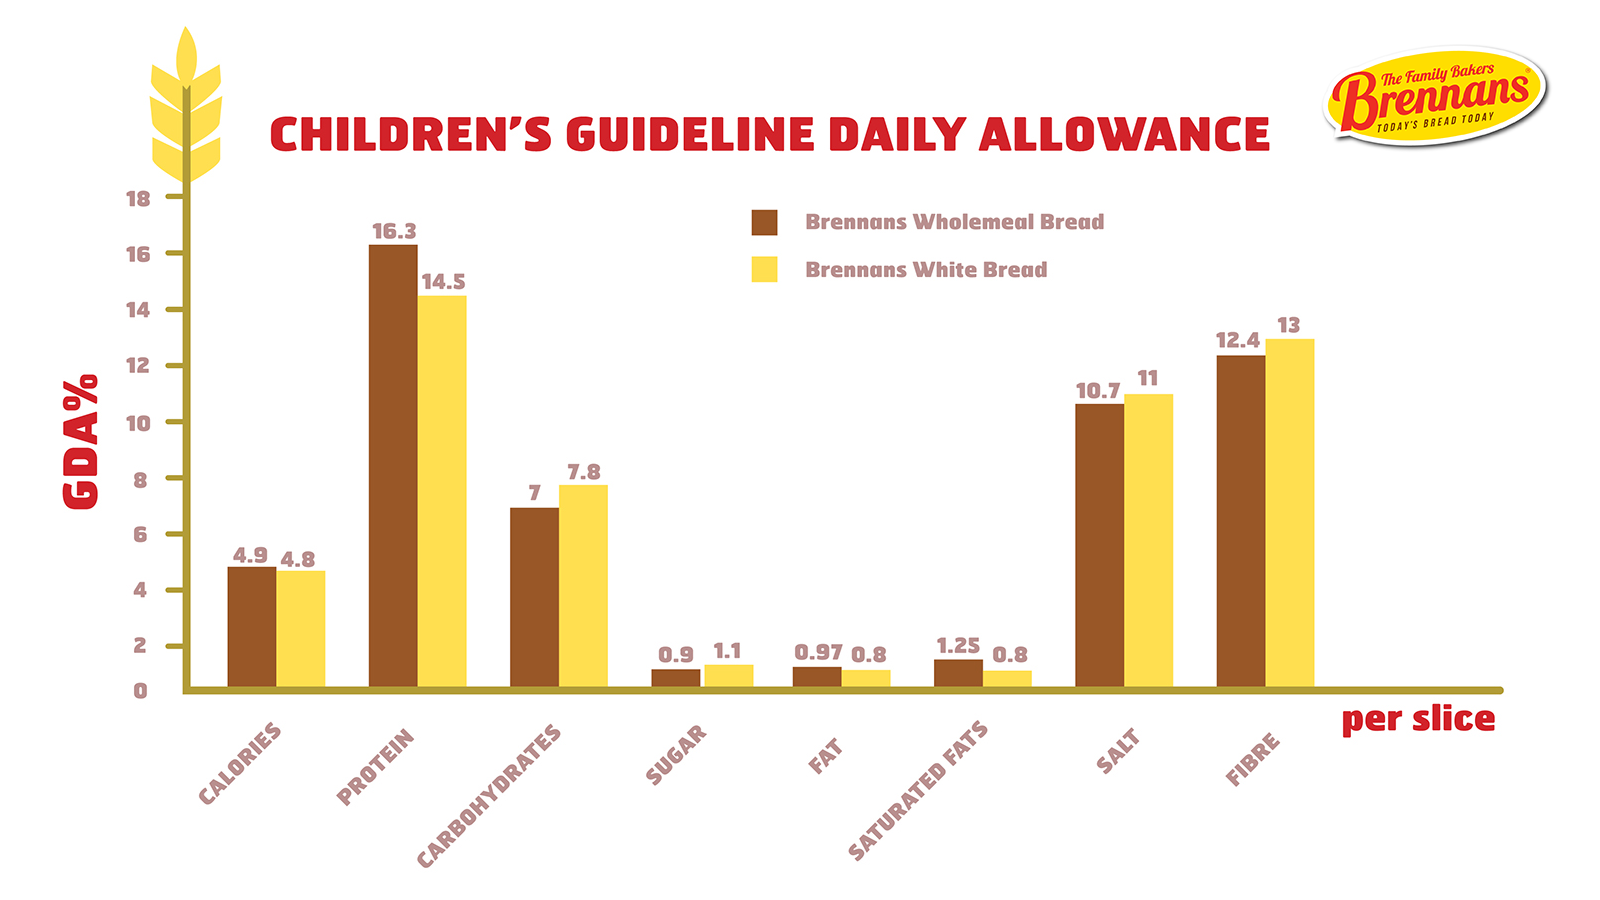 Children's Guideline Daily Allowance